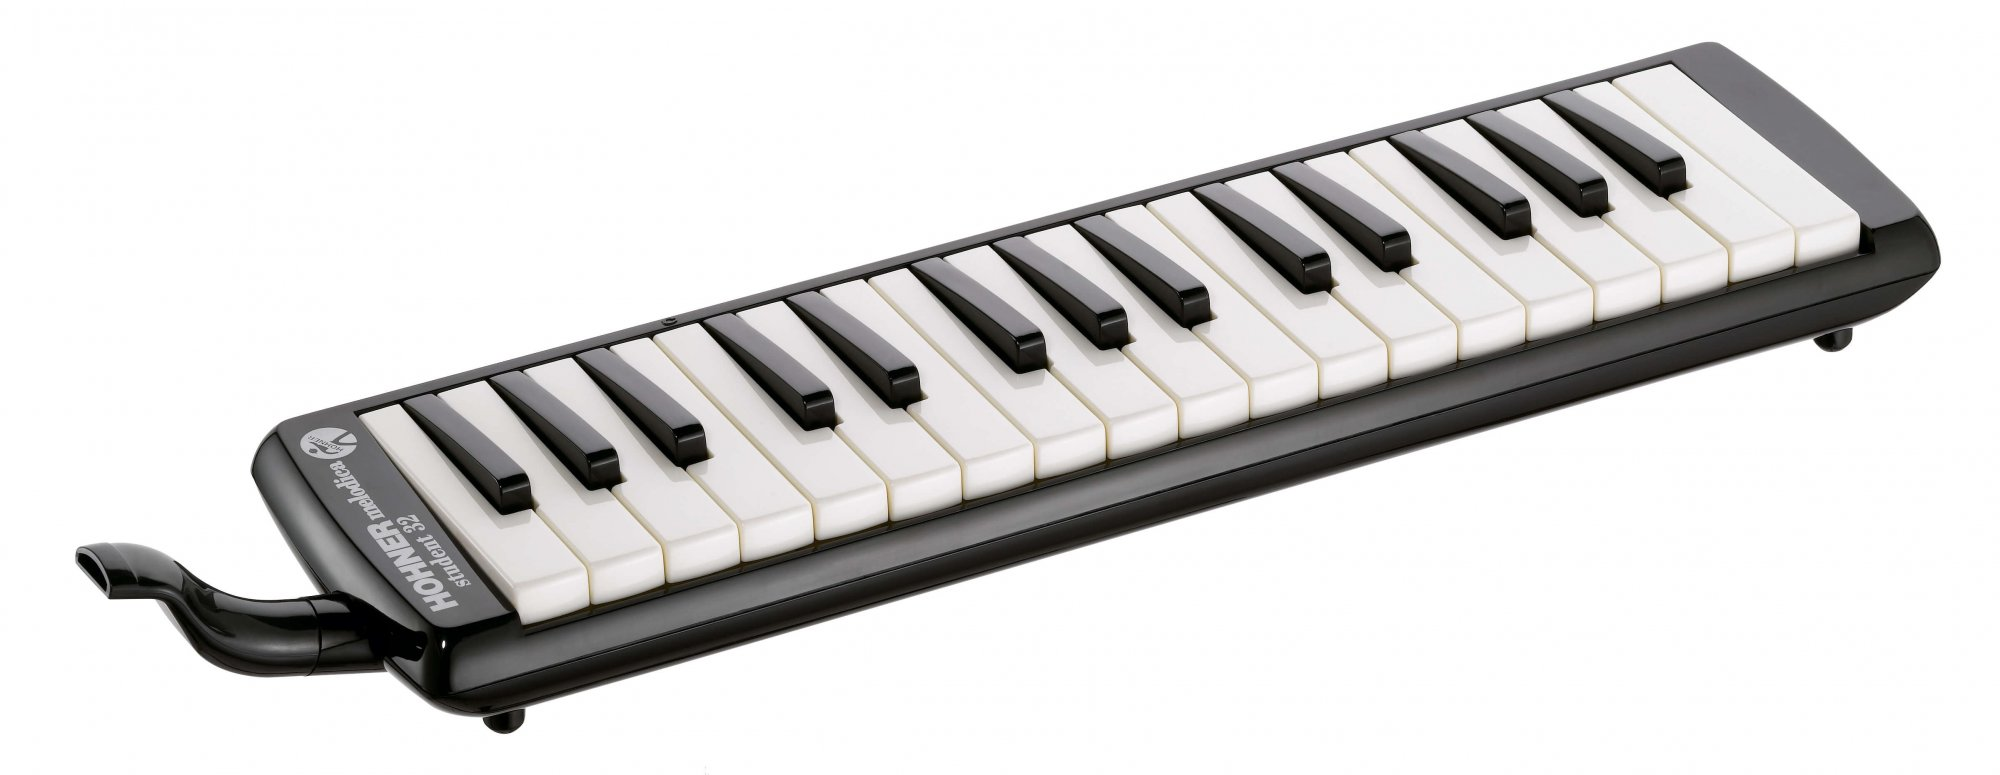 Hohner 32B Instructor 32 Melodica